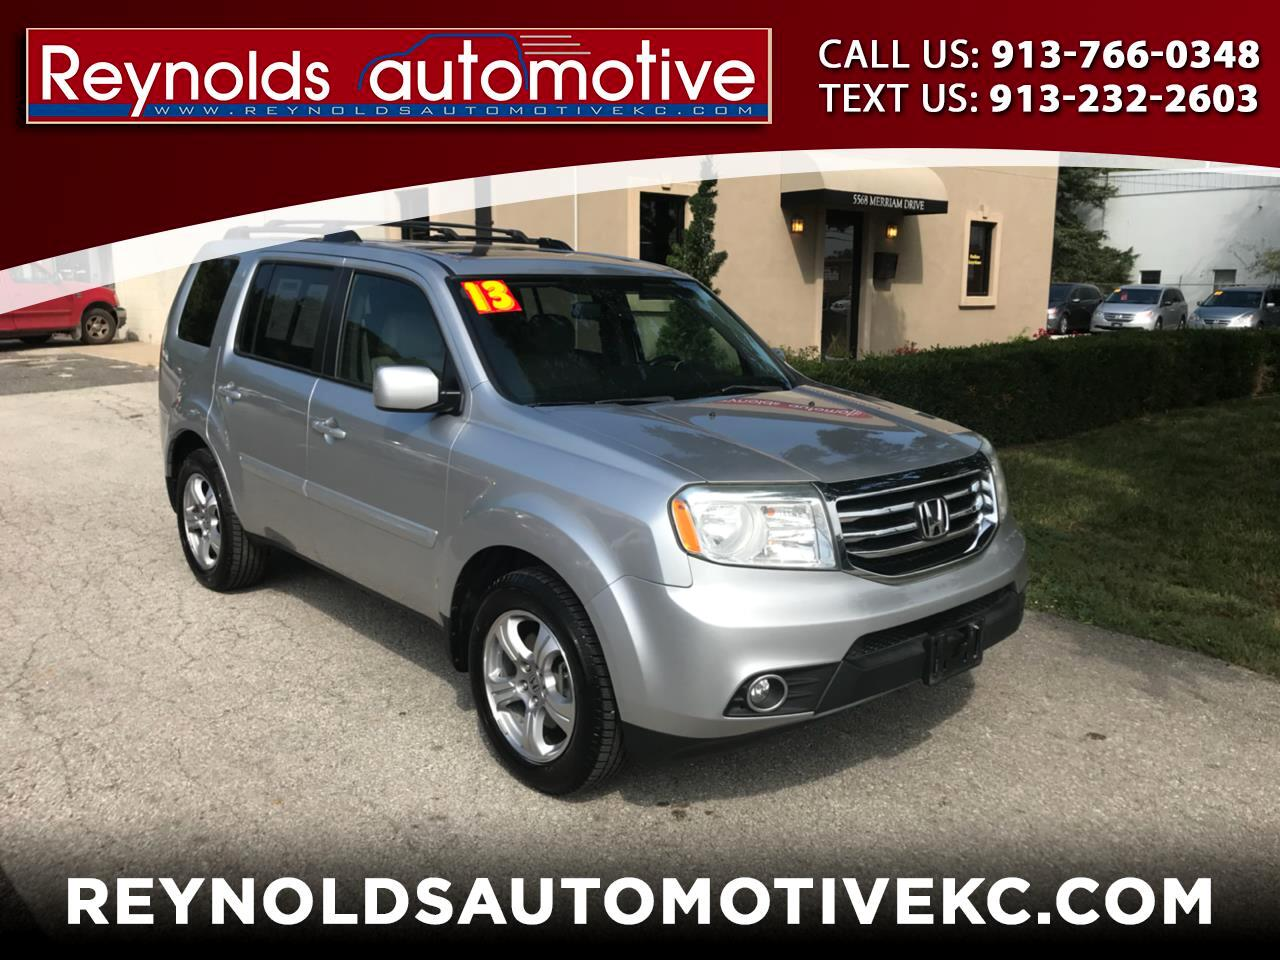 2013 Honda Pilot EX-L 2WD 5-Spd AT with Navigation